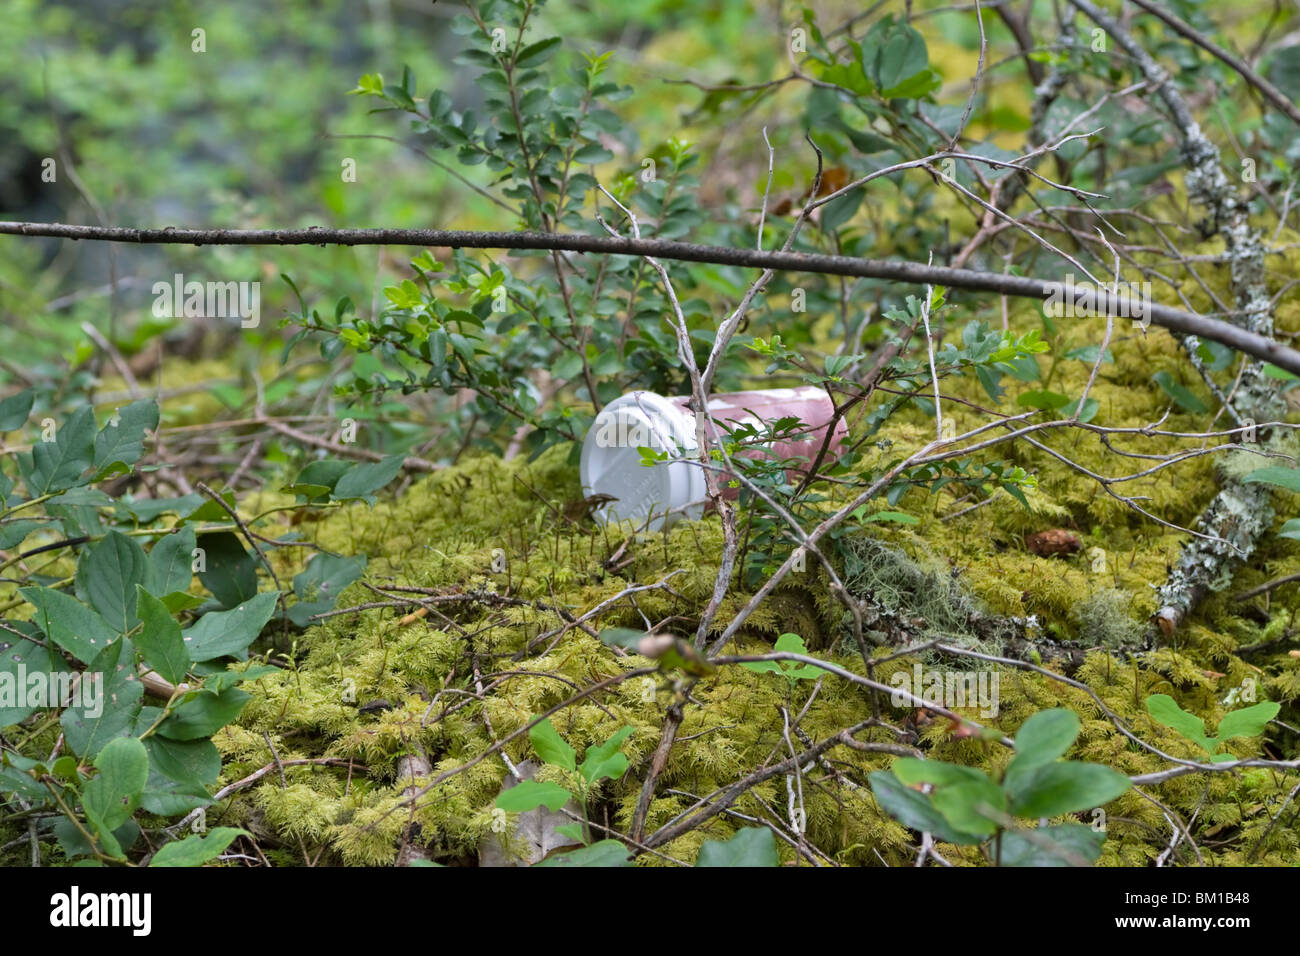 Litter in spring woodlands. An empty cardboard coffee cup with white plastic lid has been carelessly thrown away. - Stock Image